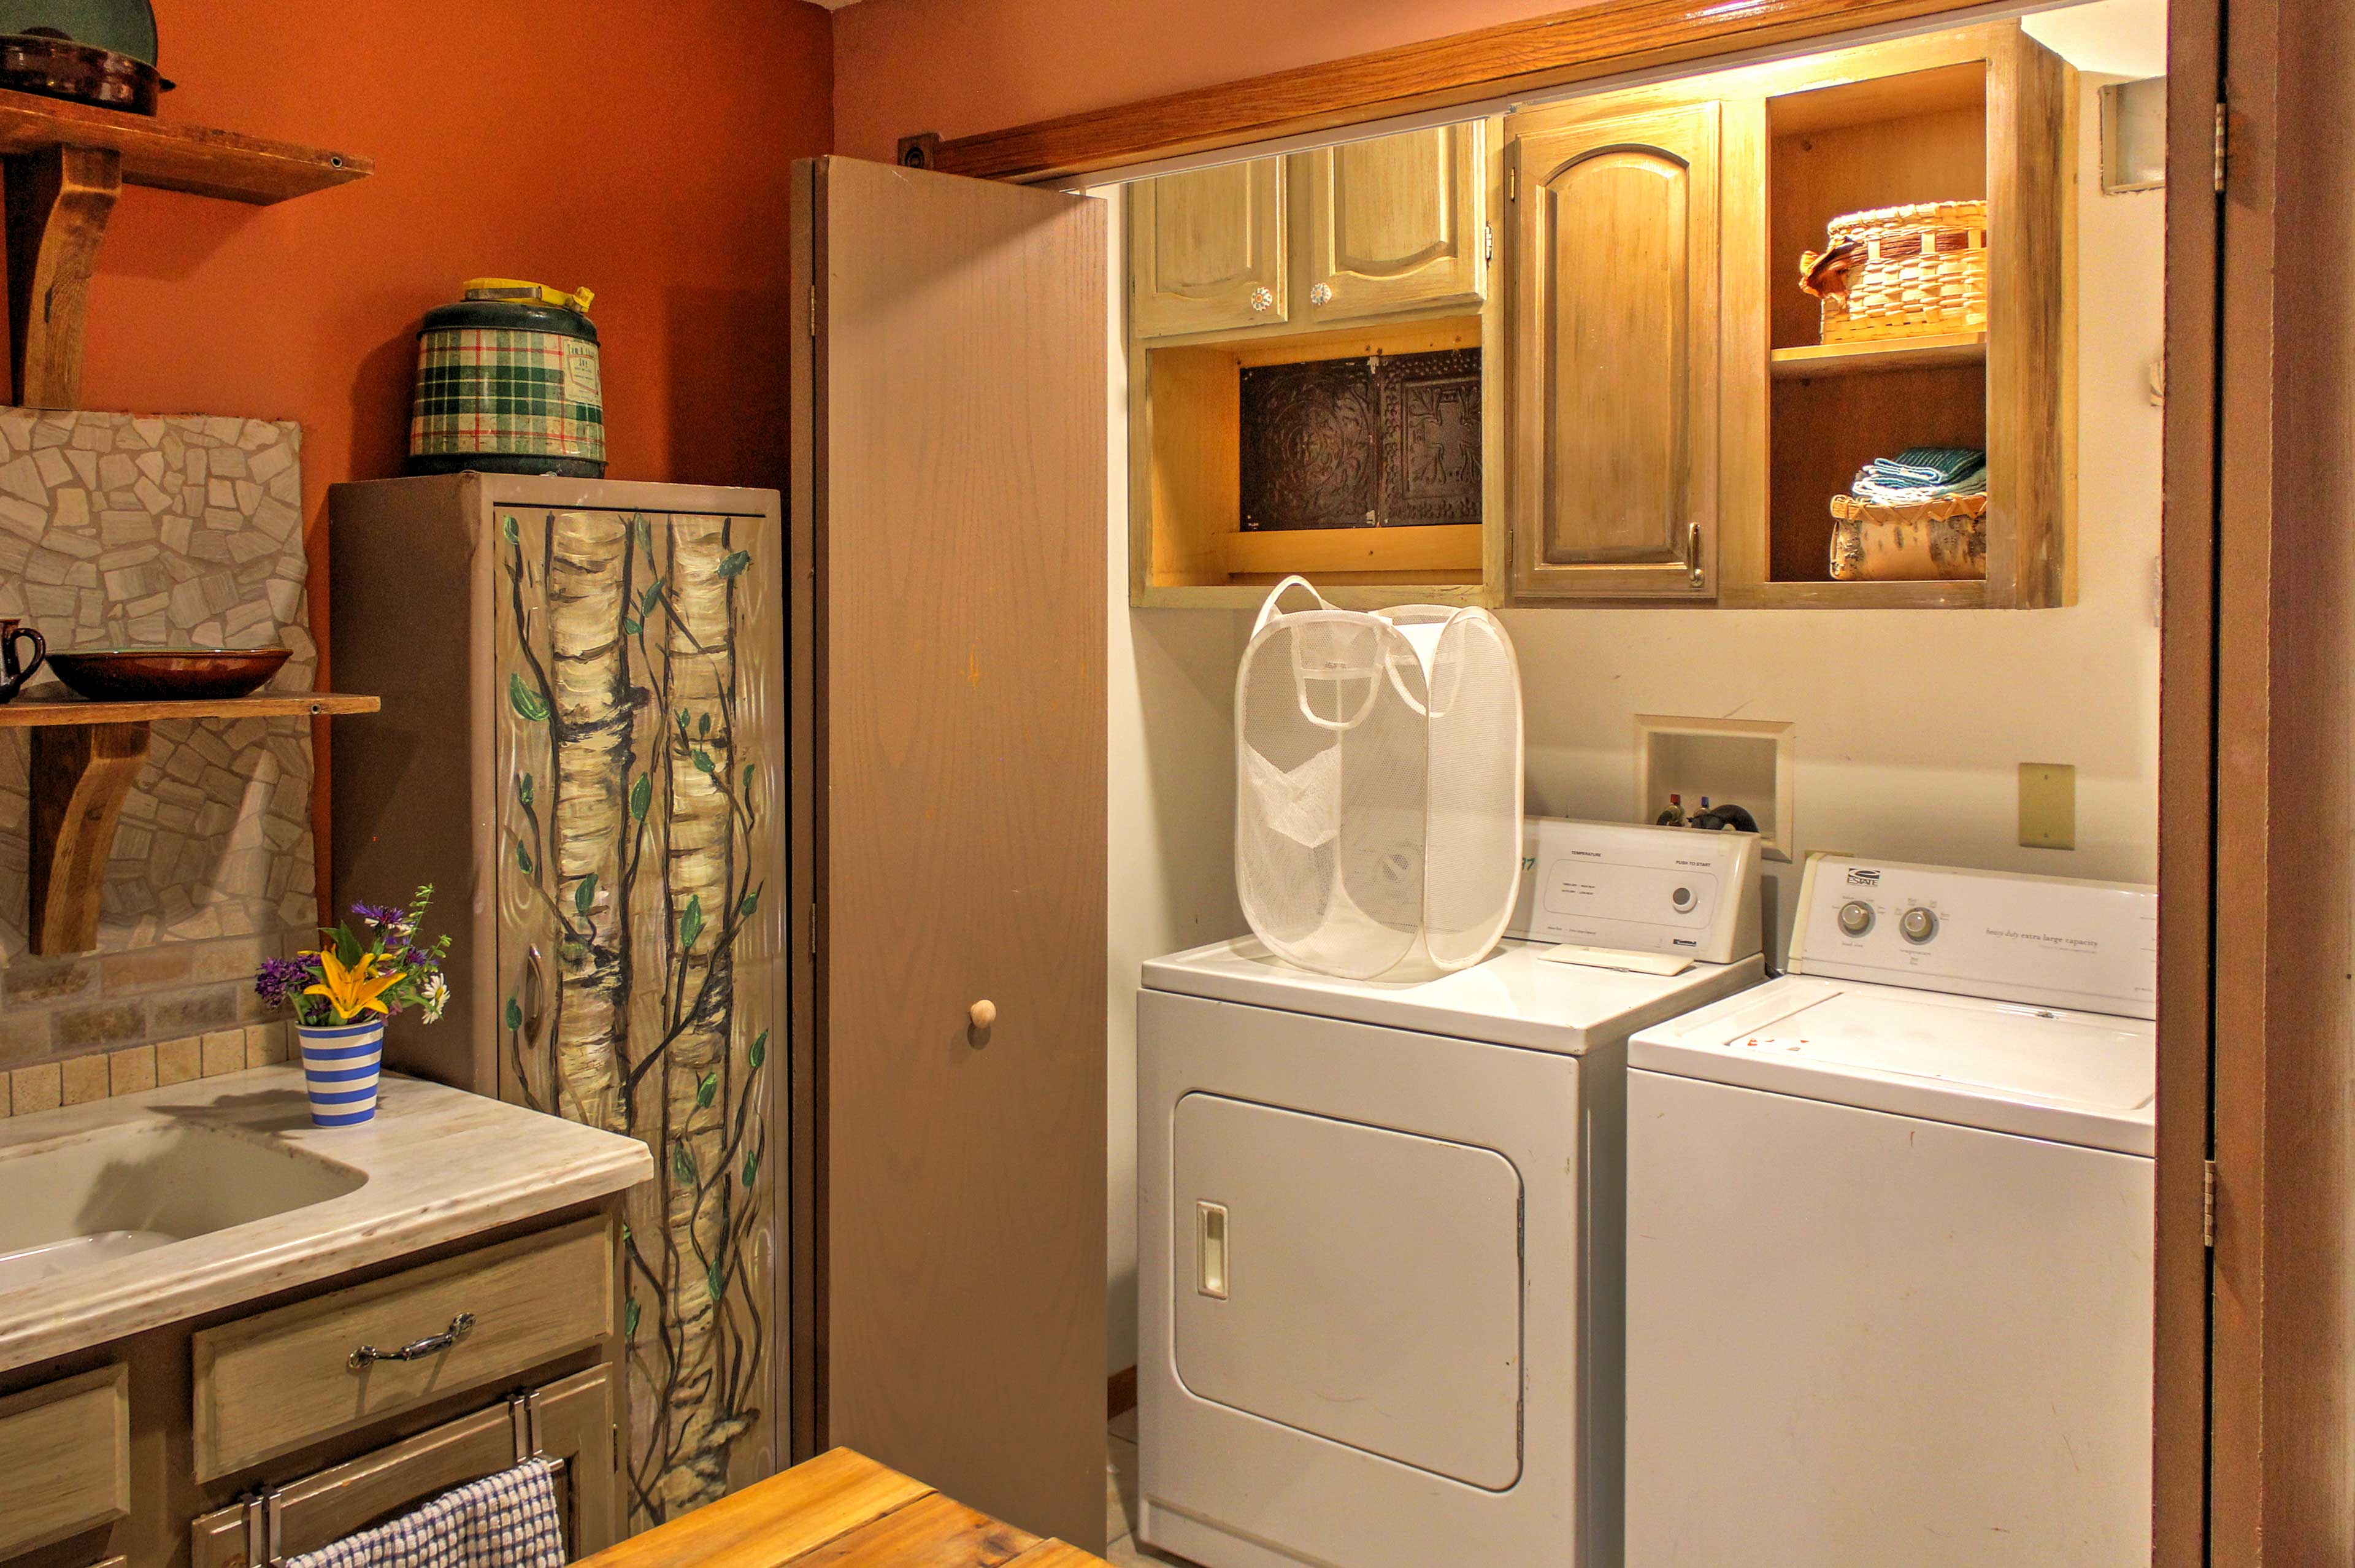 A washer and dryer can be found in the laundry closet off the kitchen.